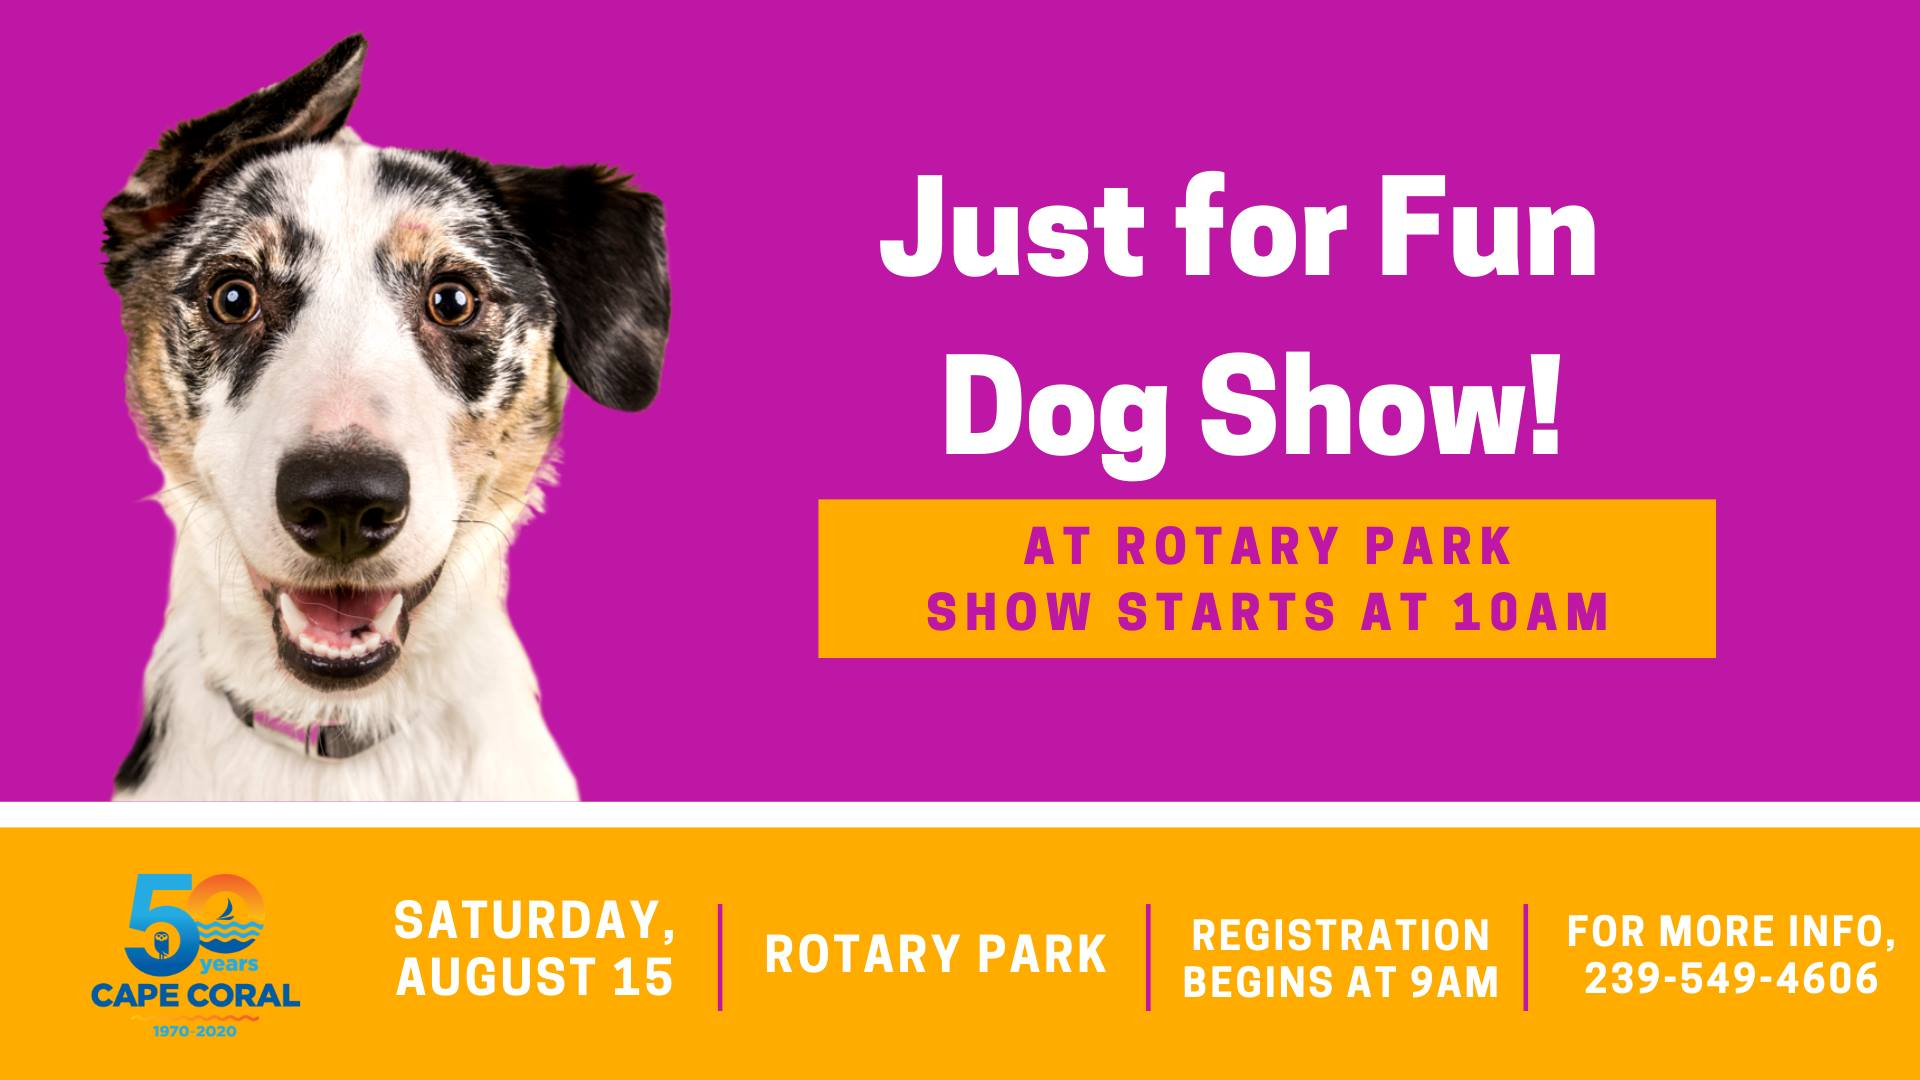 Just for Fun Dog Show 2020